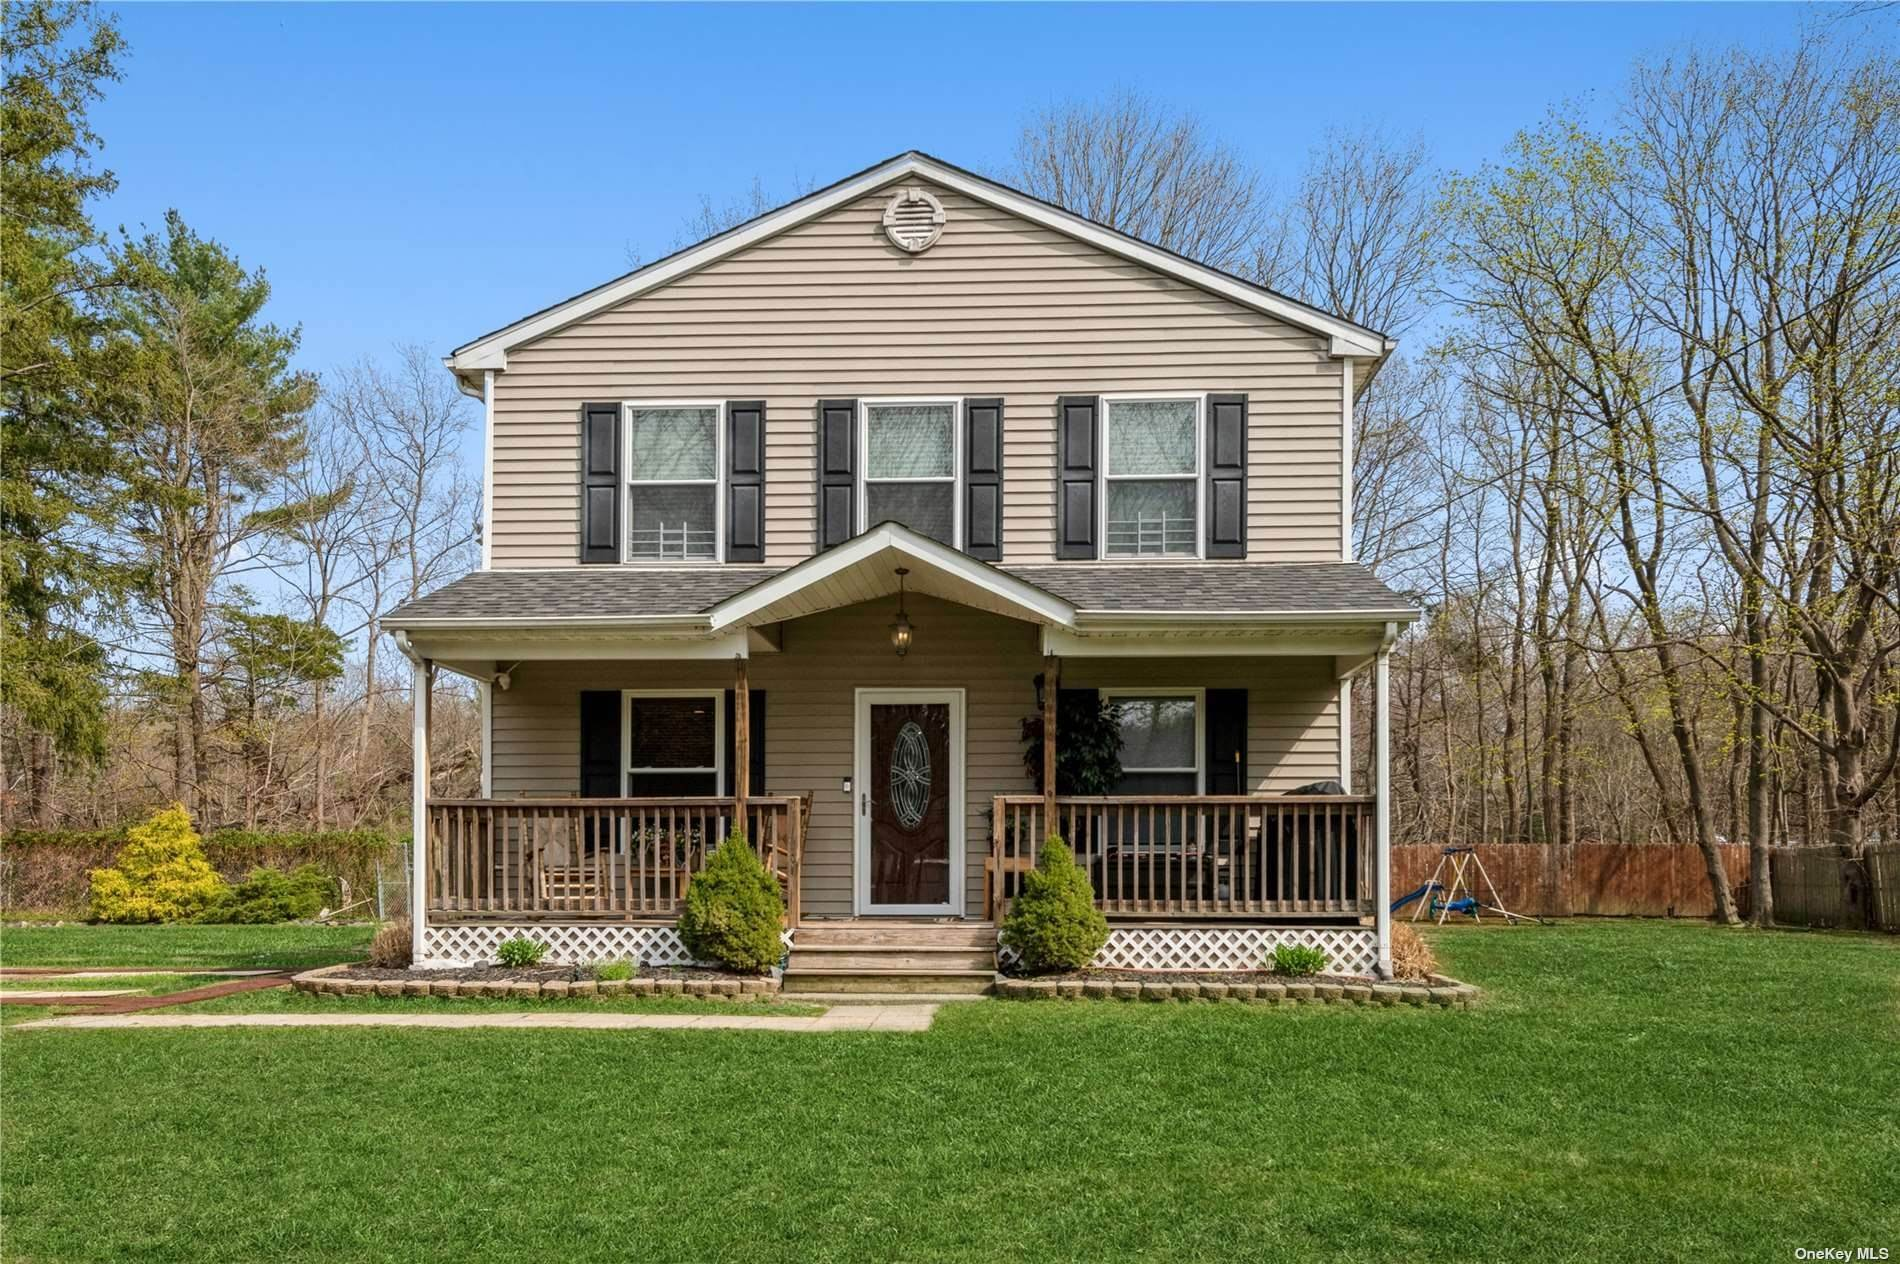 Residential for Sale at 586 Old Country Road Huntington Station, New York 11746 United States